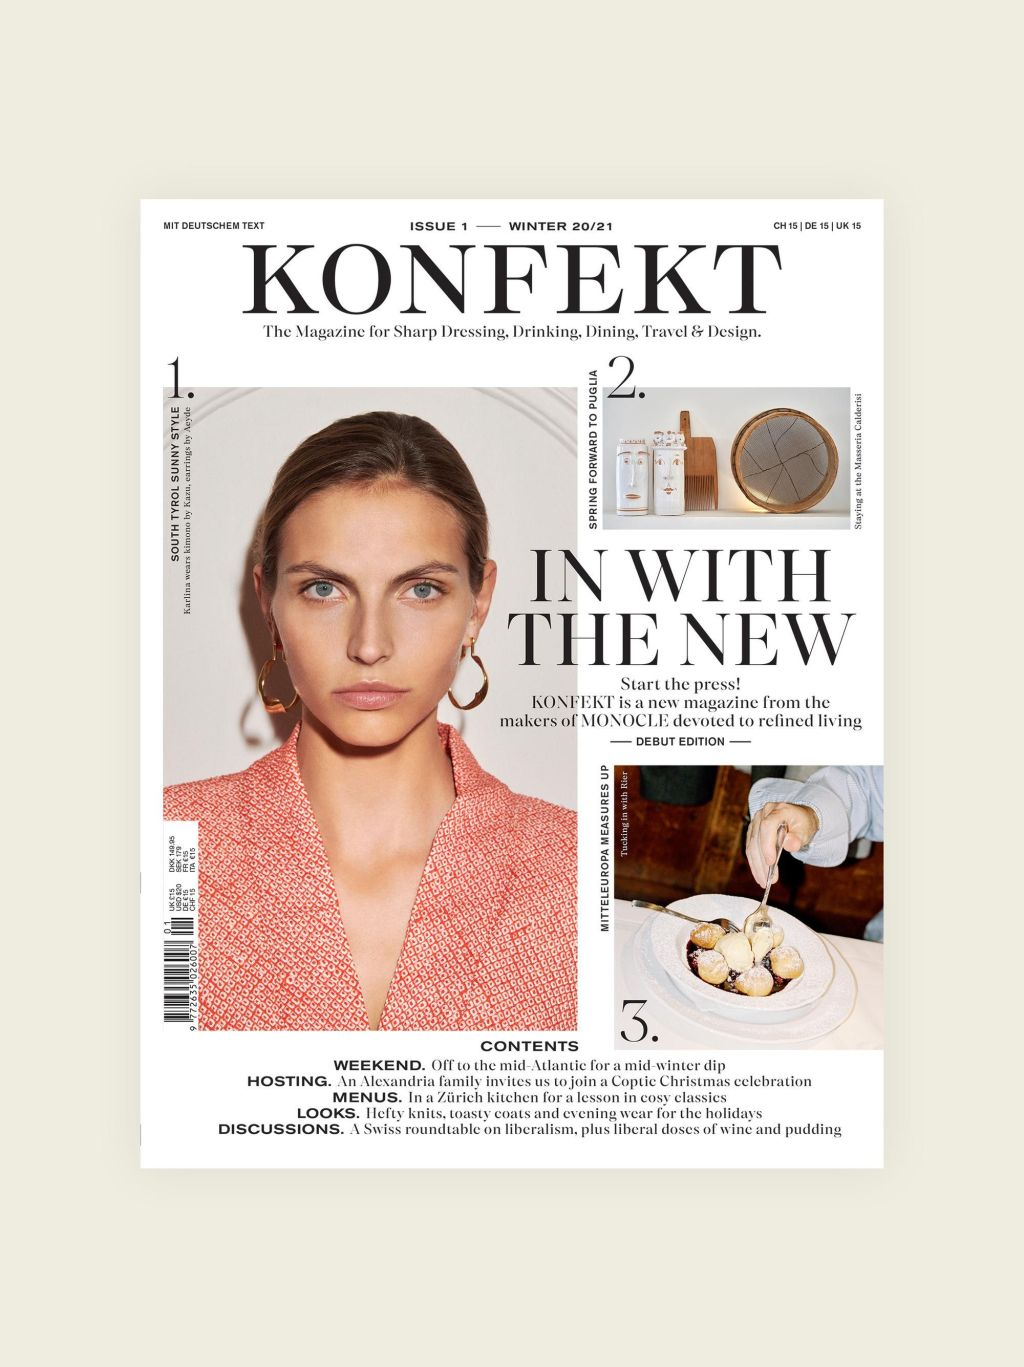 The launch issue cover of Konfekt